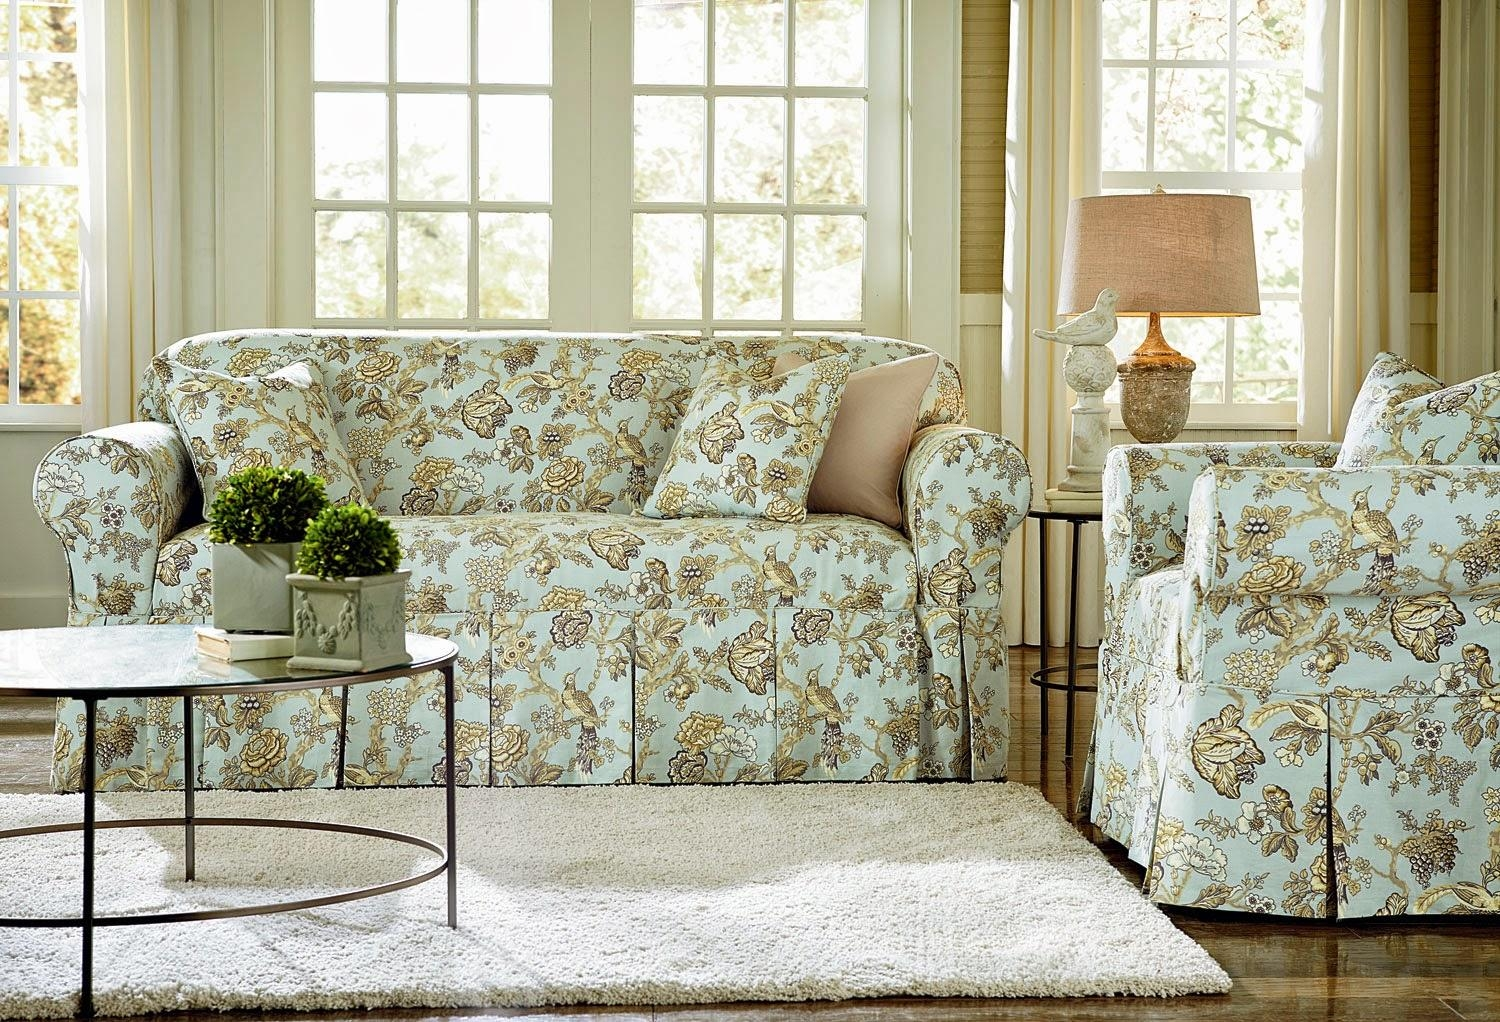 Sure Fit Slipcovers Blog Intended For Floral Sofas And Chairs (Photo 3 of 20)